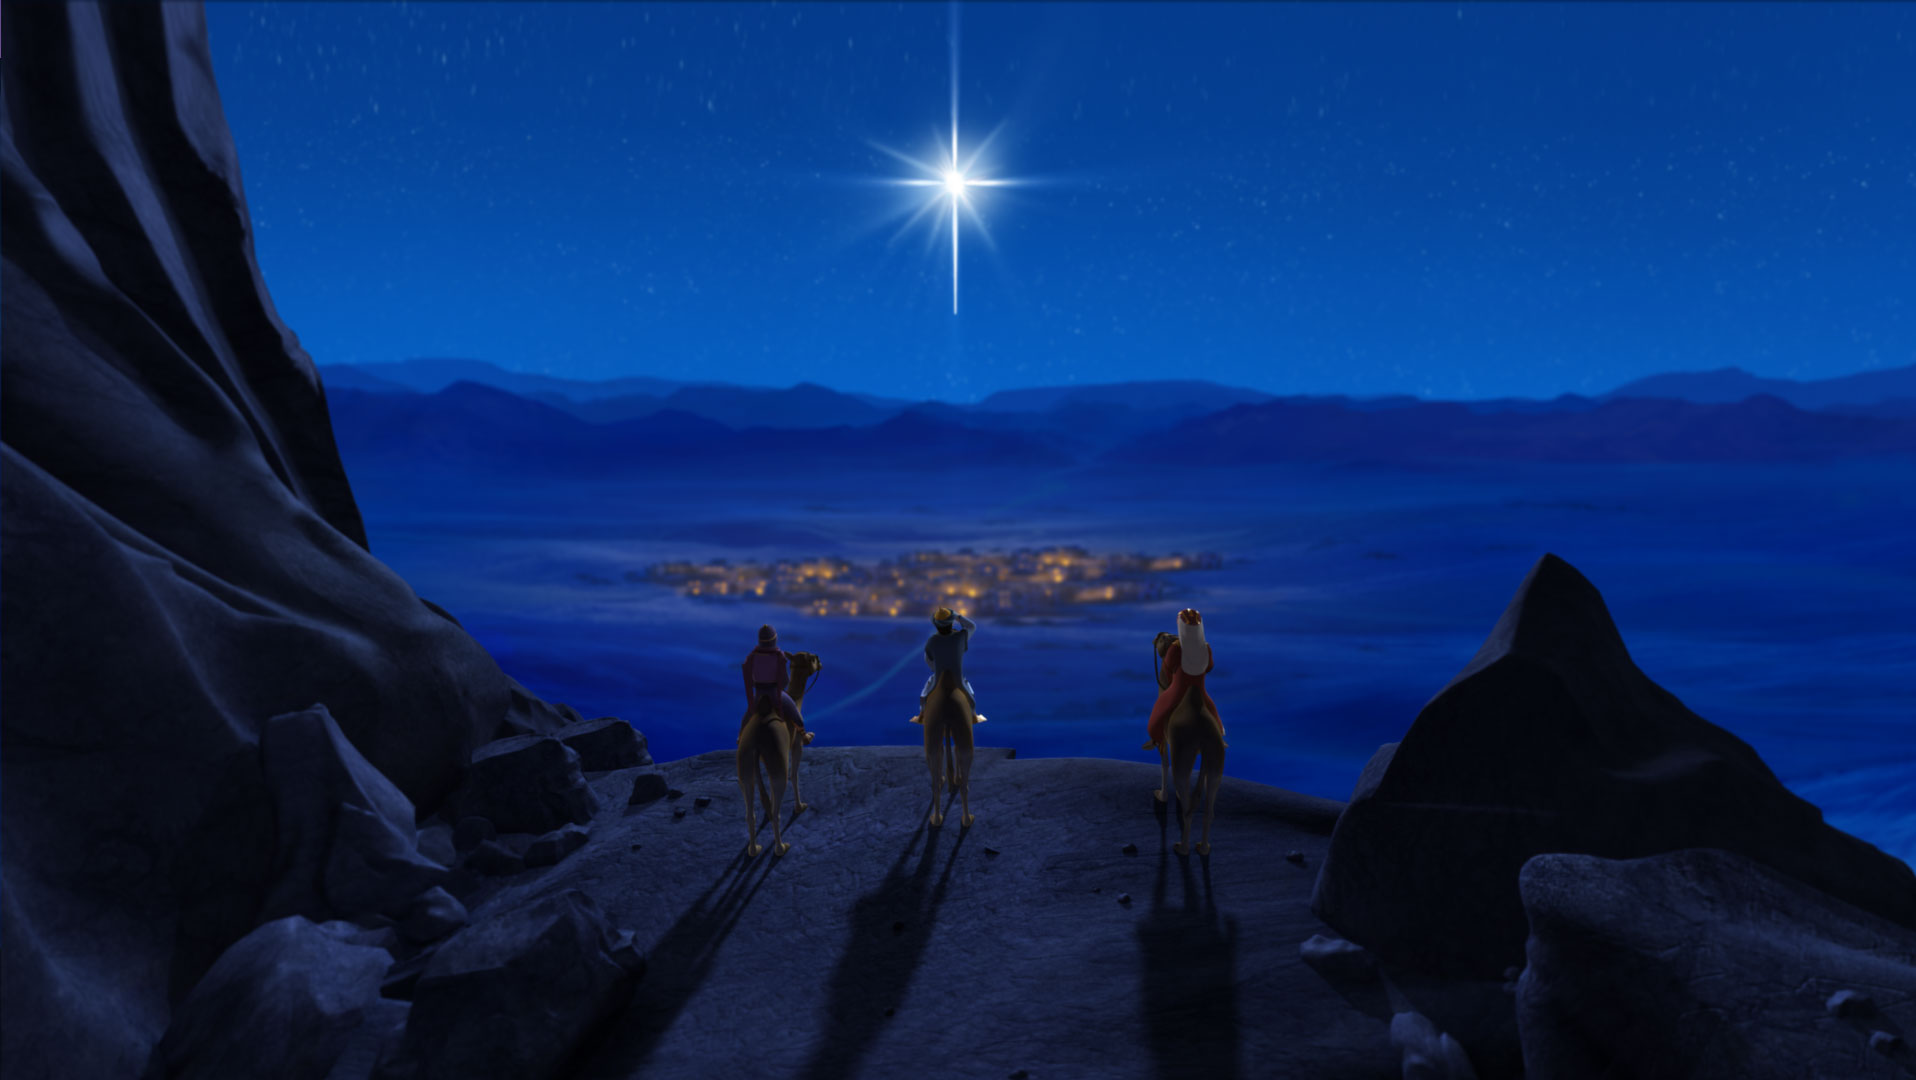 <h2>The First Christmas</h2>